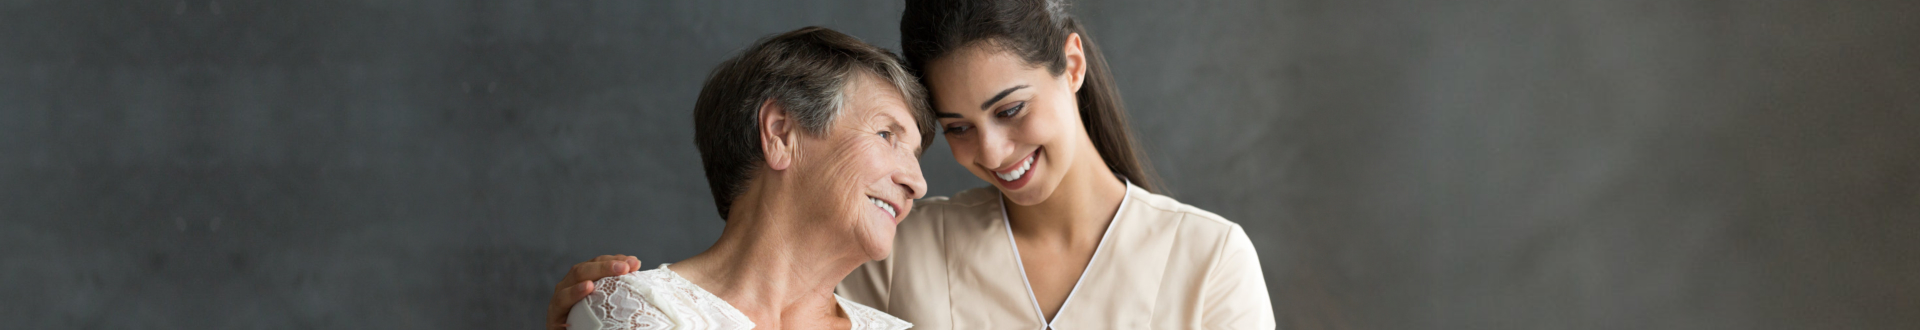 senior woman and caregiver smiling